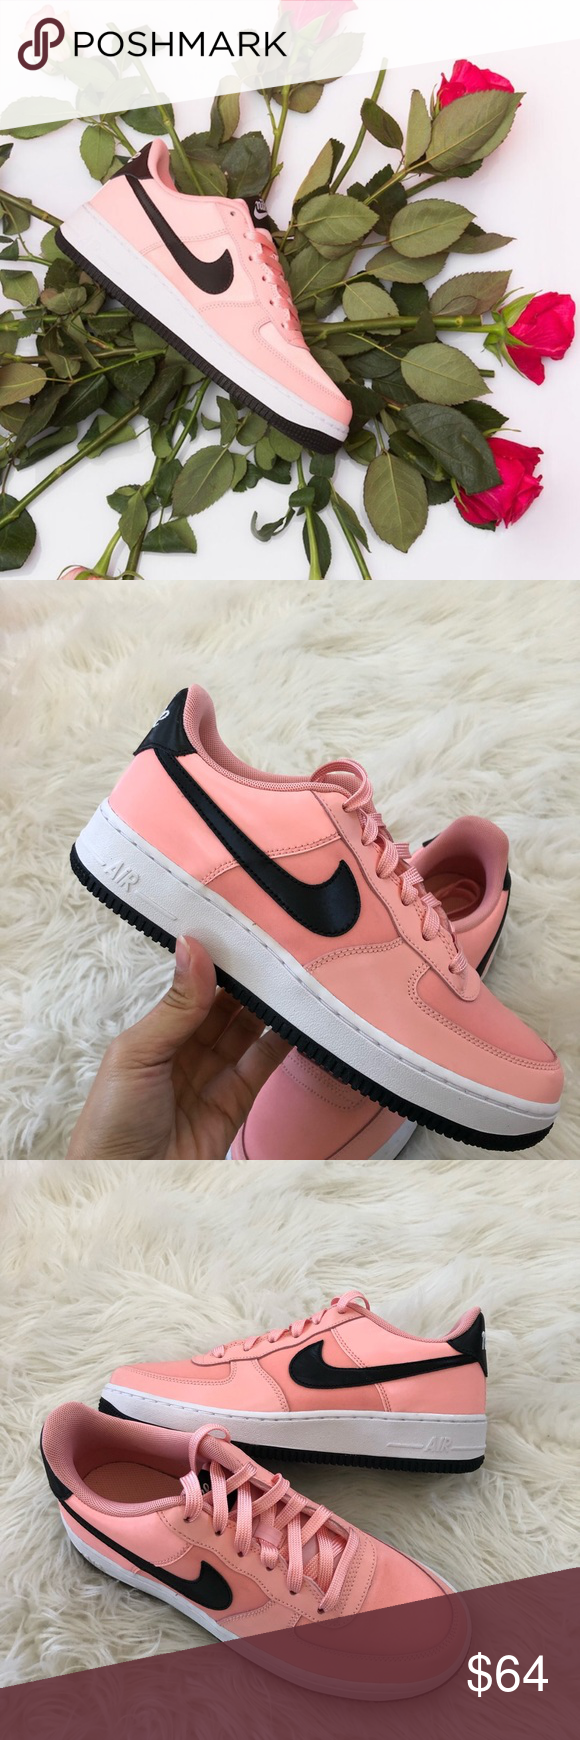 sports shoes eb394 4561e New✓ NIKE Air Force 1 VDay GS ~ 7Y brand new no lid size 7Y fits women s  8.5 bleached coral black white comes from smoke free home 100% authentic ...